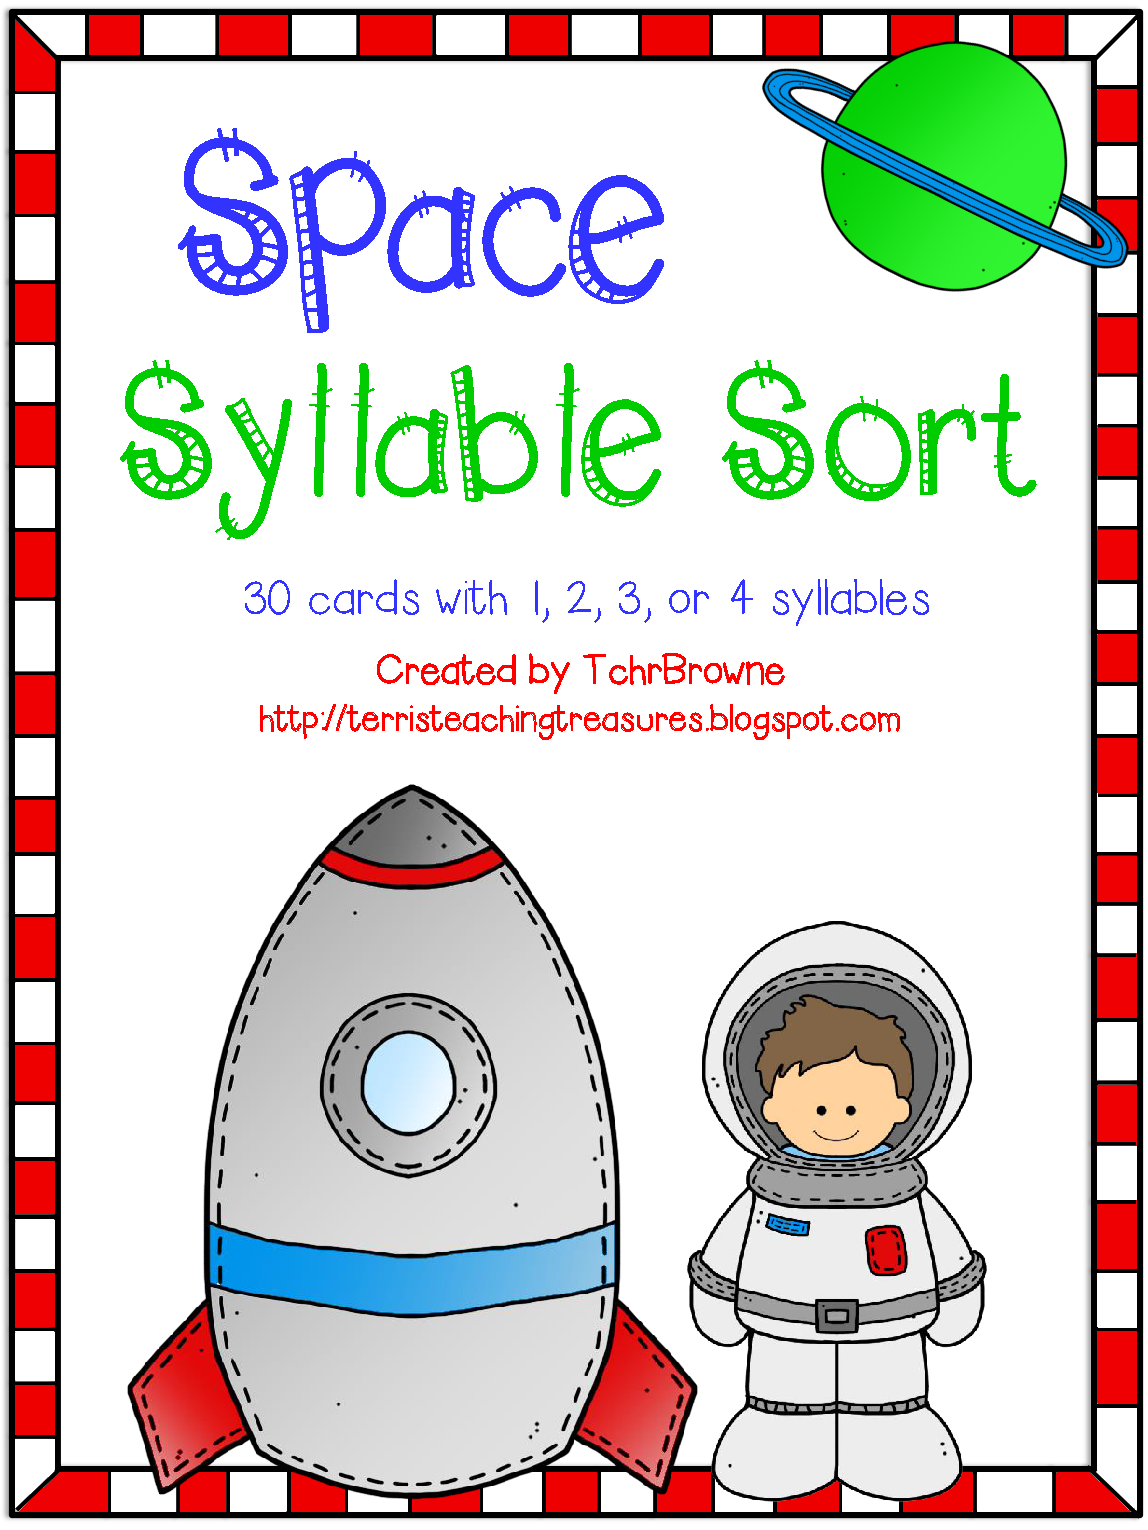 http://www.teacherspayteachers.com/Product/Space-Words-Syllable-Sort-1345801